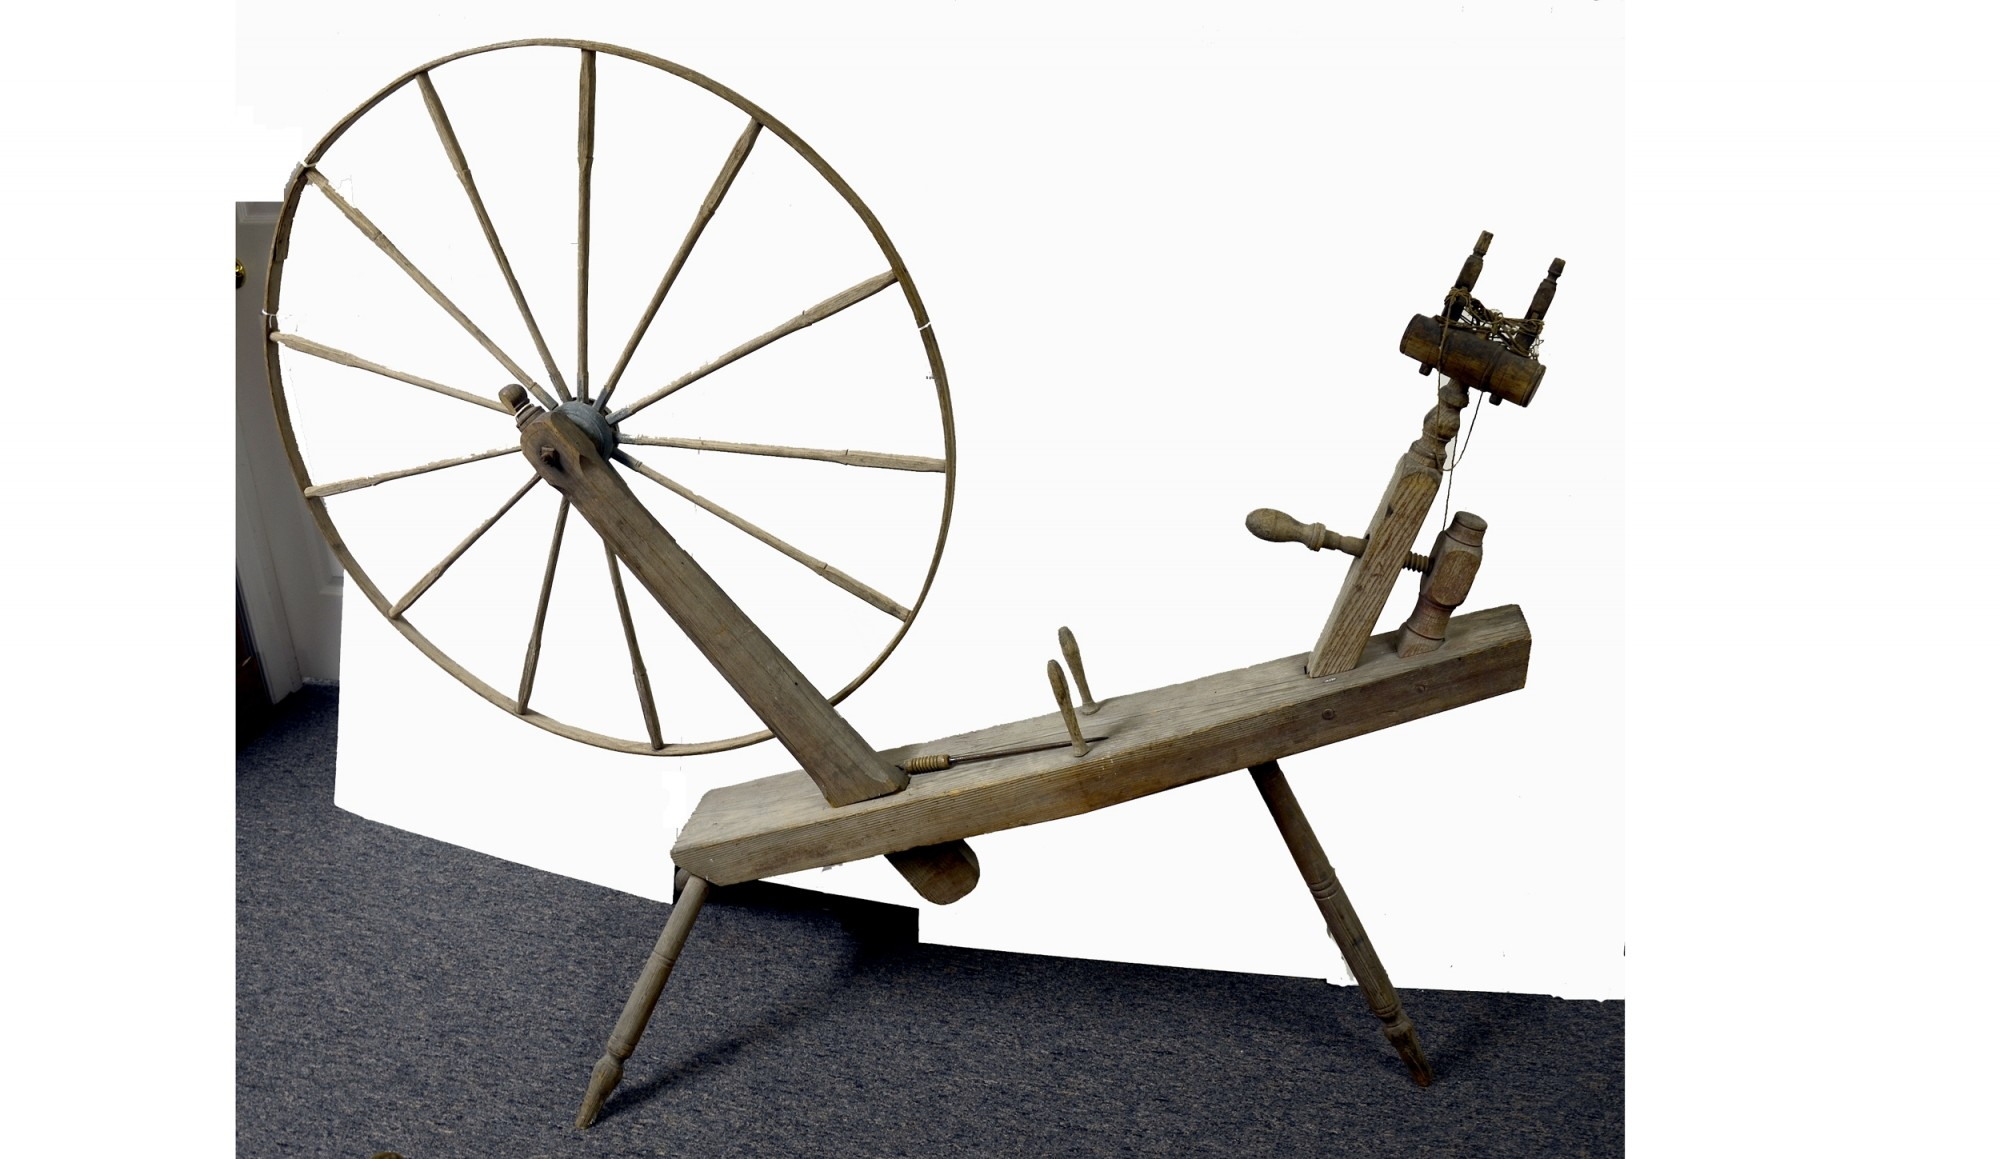 LATE 18TH CENTURY GREAT WHEEL